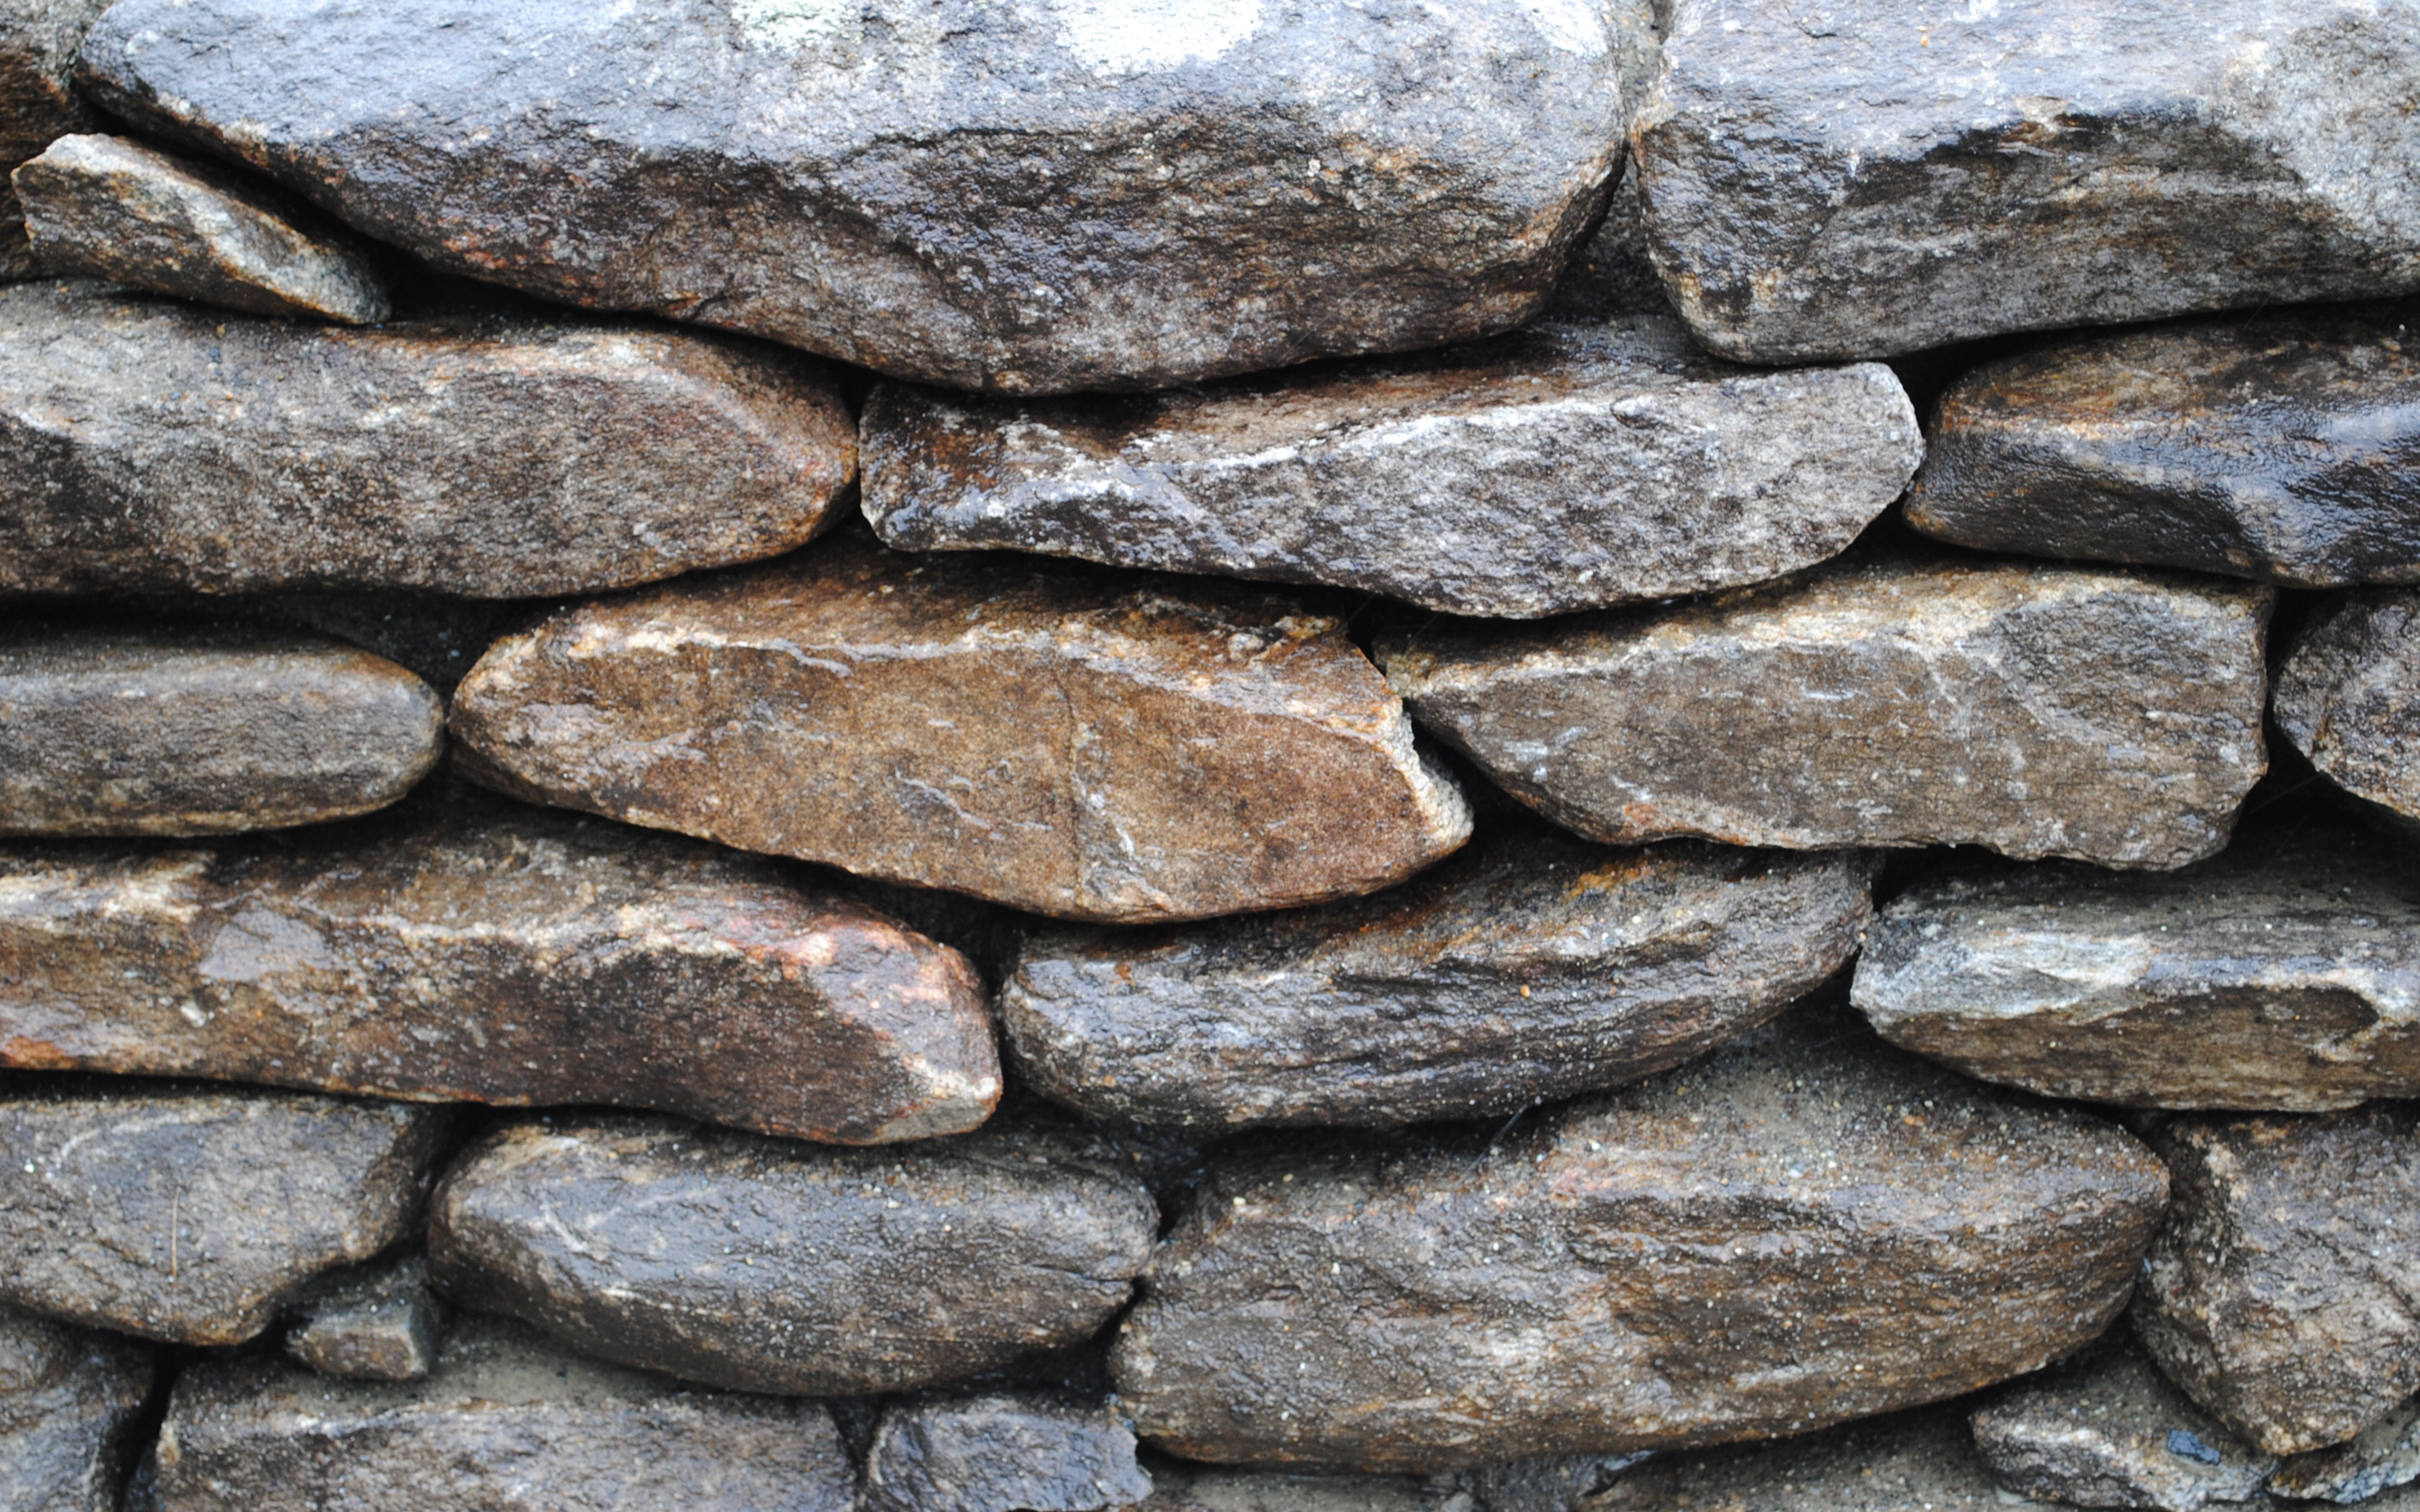 Popular Stone Types | The New Stone Age